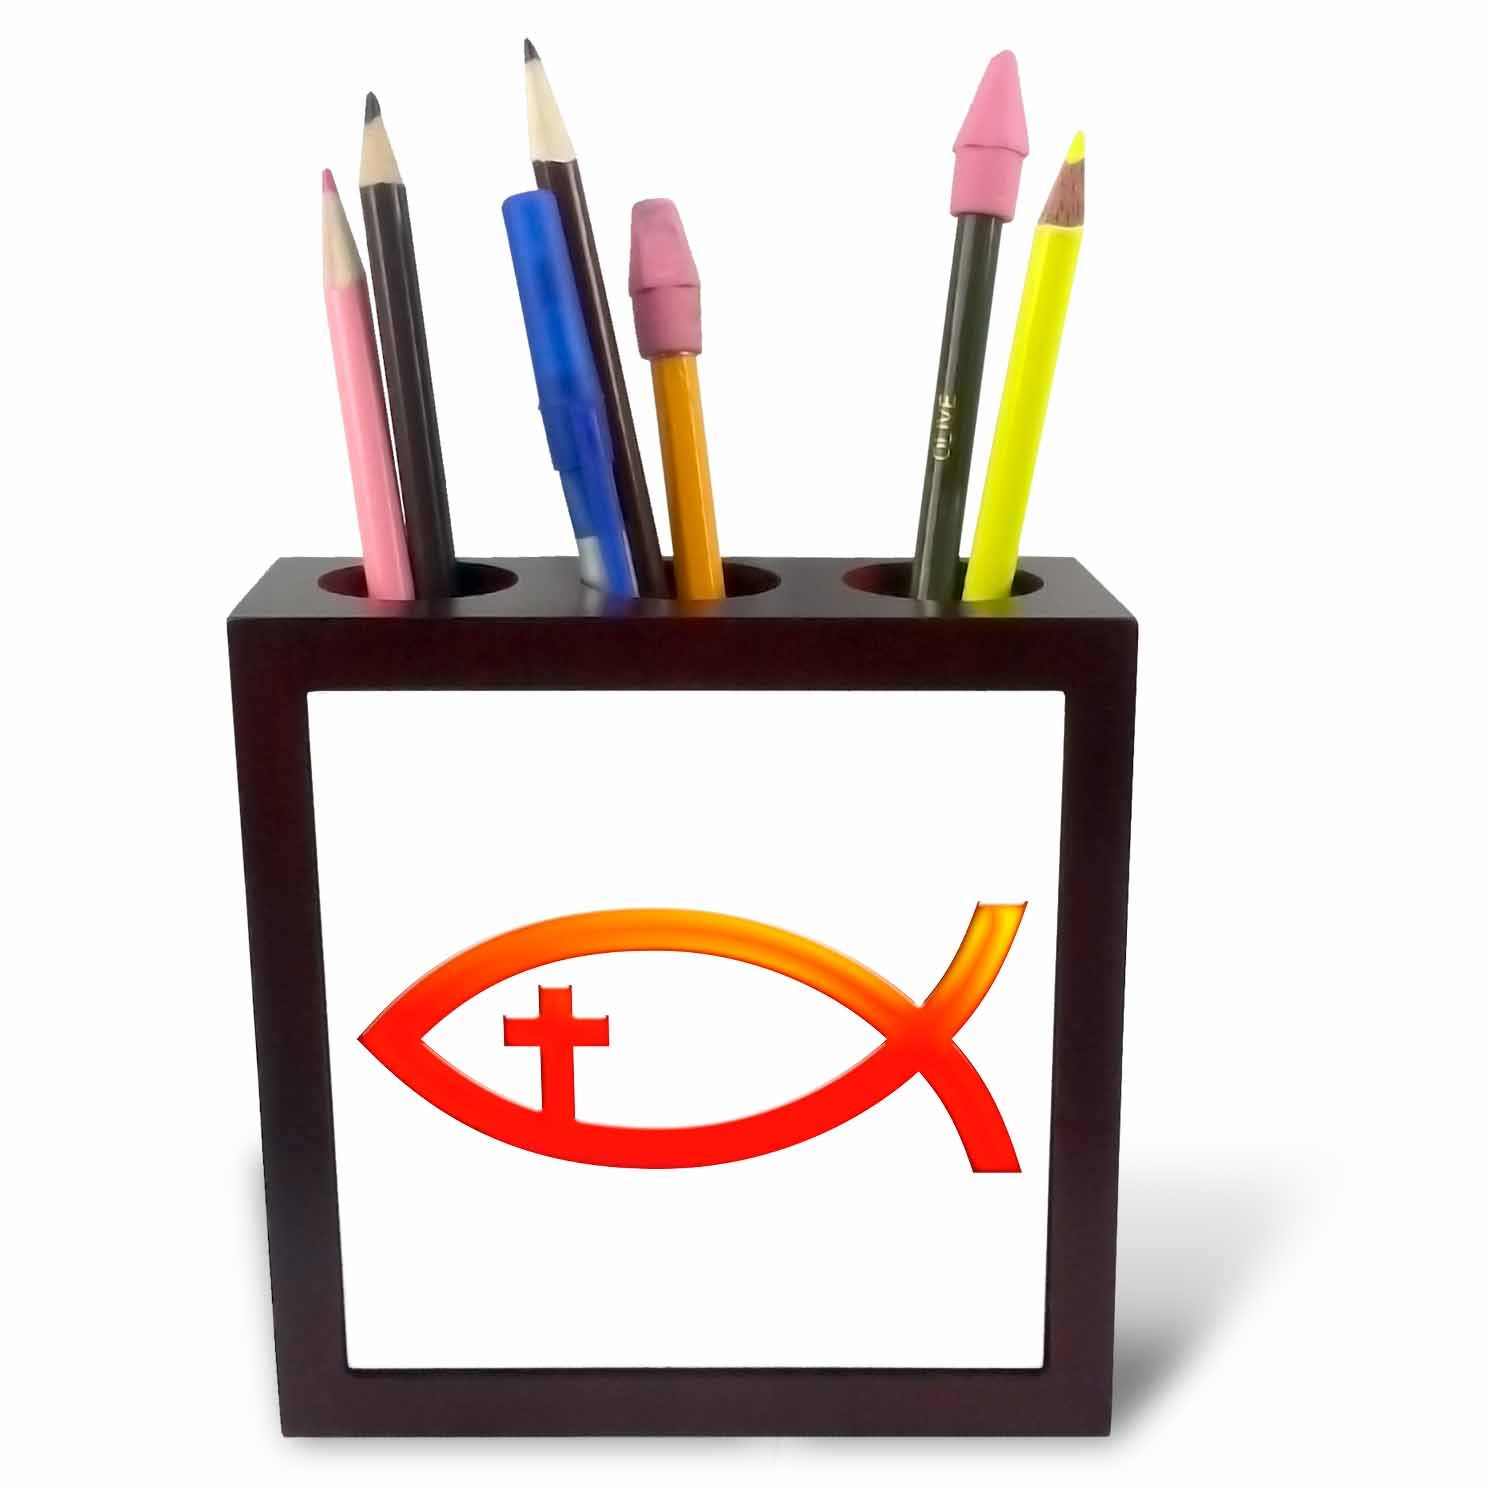 3dRose ph_41752_1 Christian Fish Symbol with Cross 'Red' Tile Pen Holder, 5-Inch by 3dRose